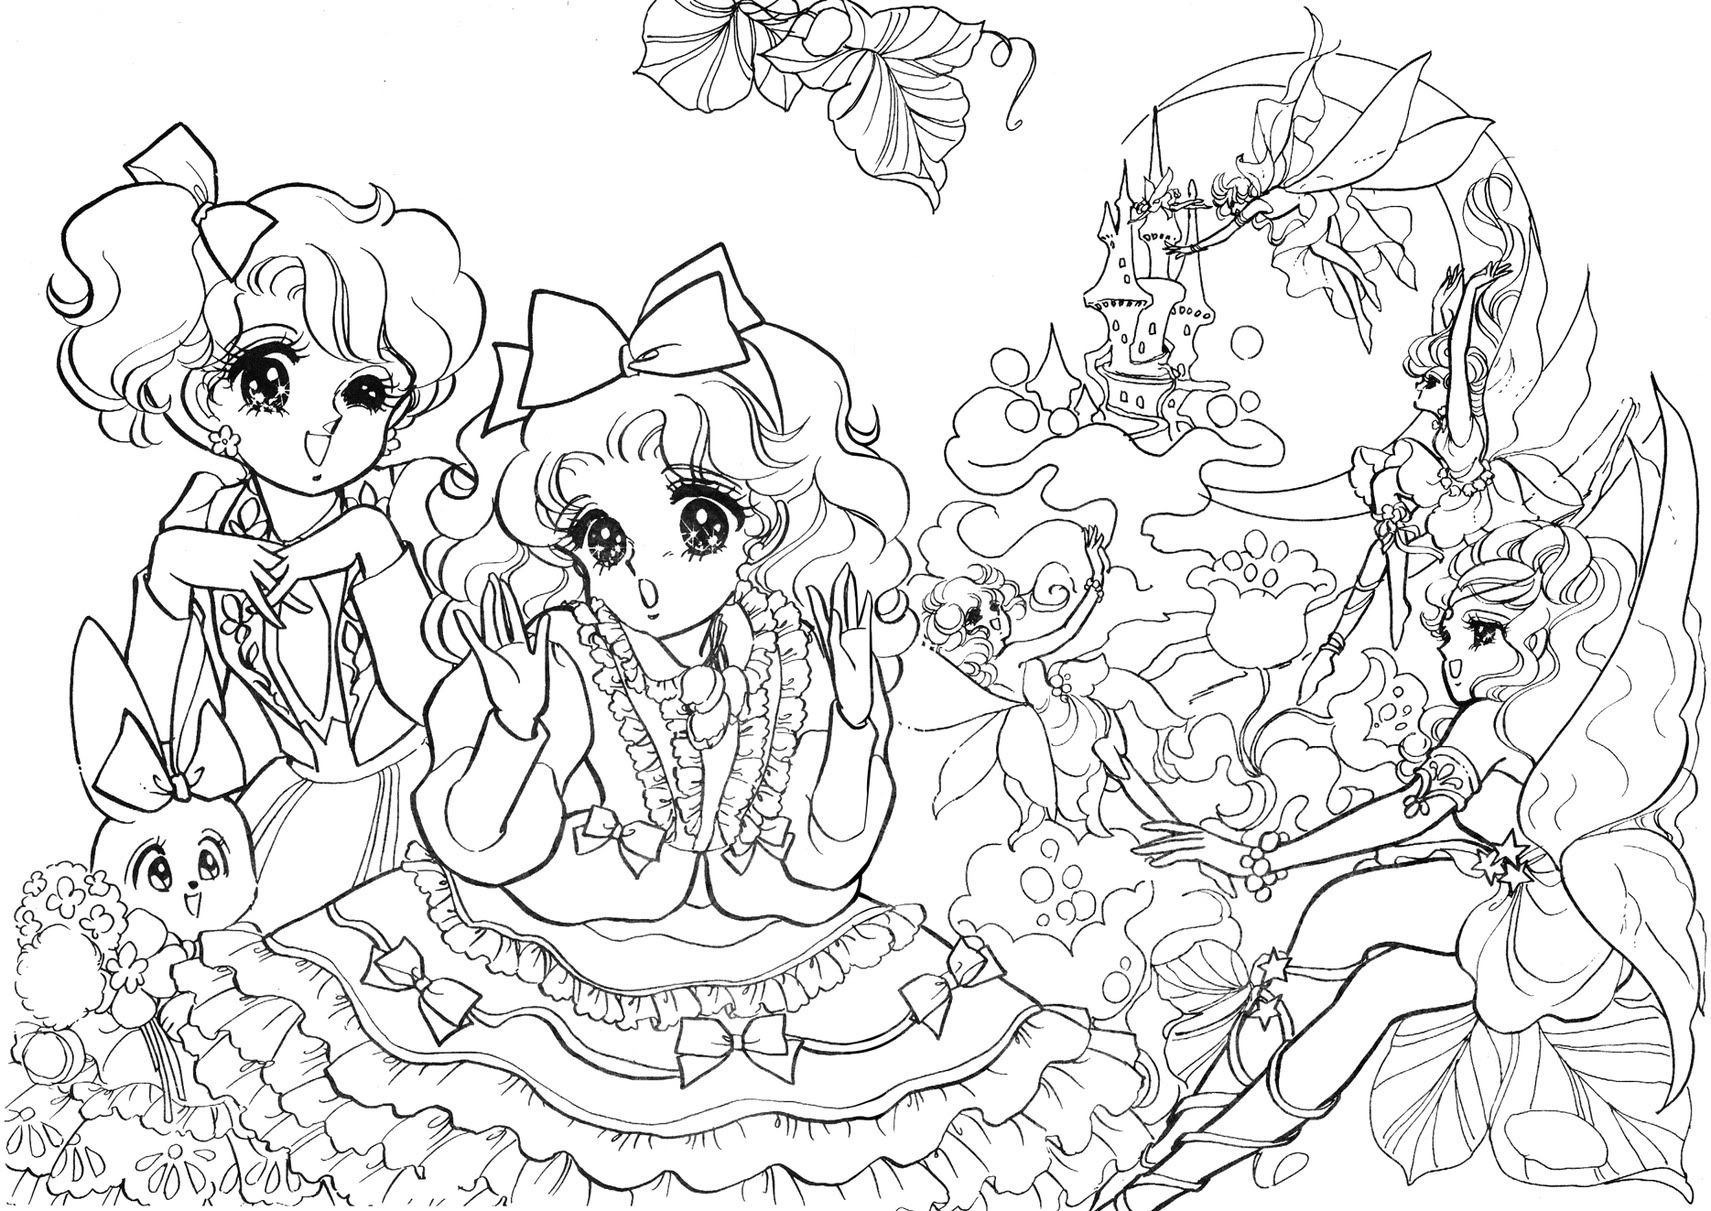 Nour Serhan Uploaded This Image To Candy Parasol Colouring Book See The Album On Photobucket